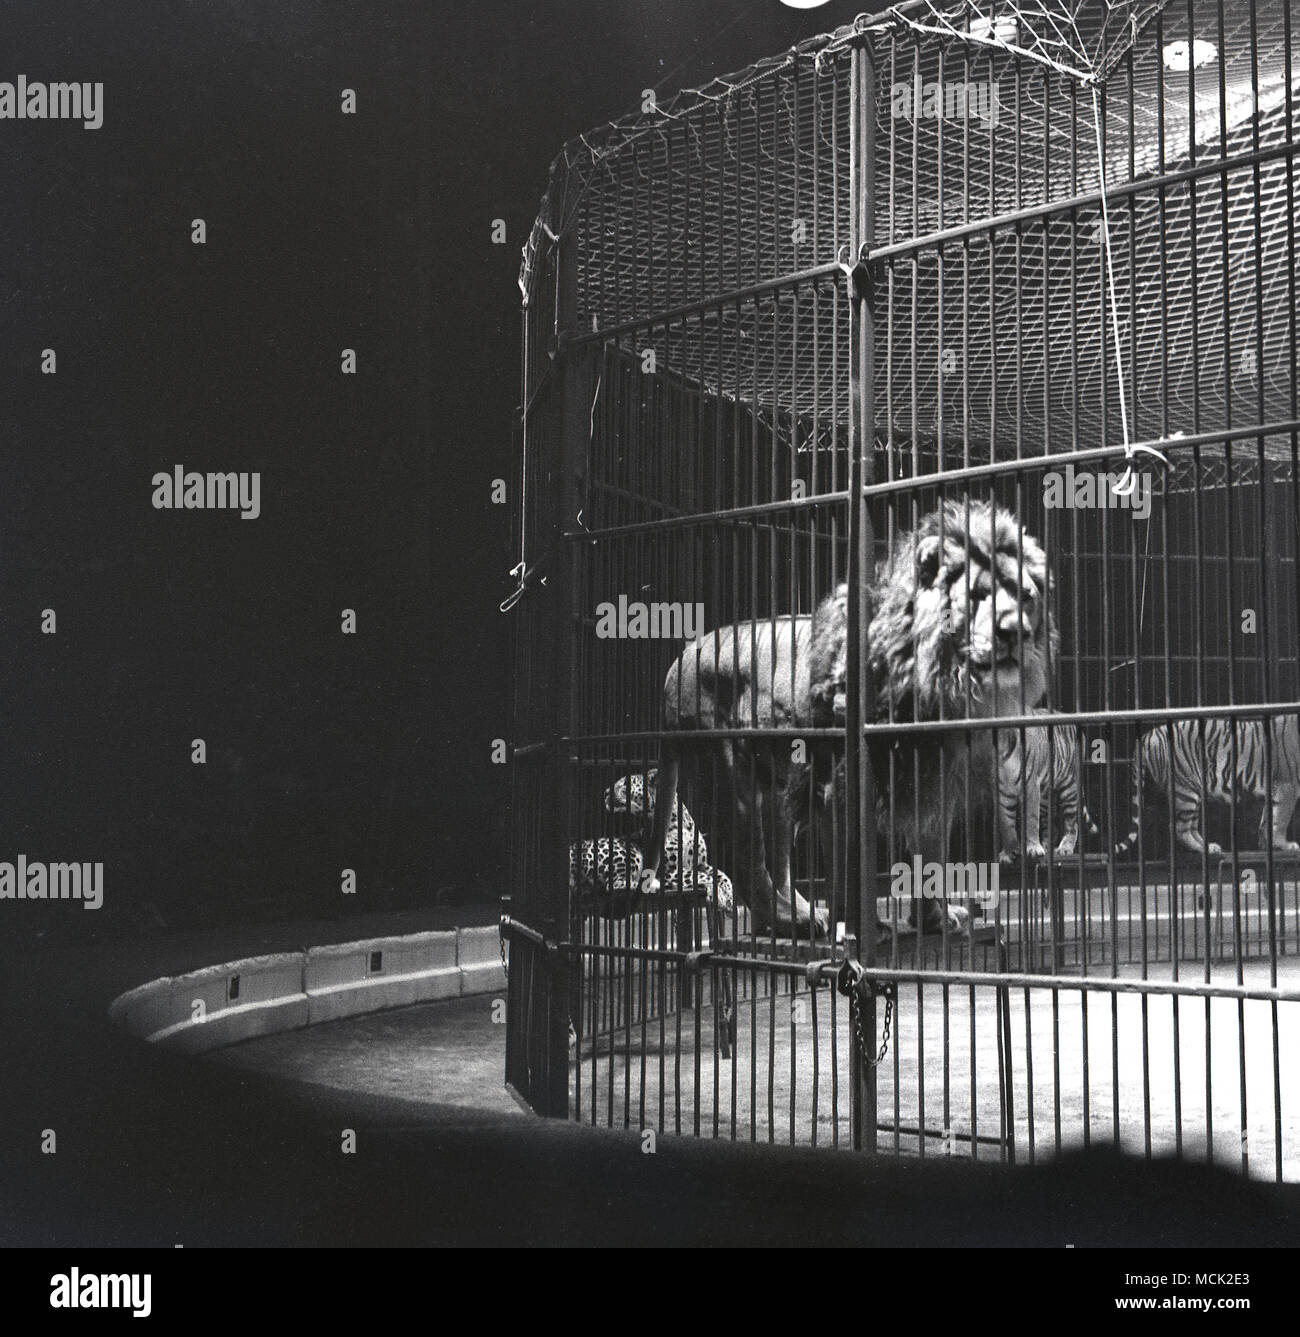 1950s, historical picture of a lion standing on a stool inside the steel cage in the circus ring along with other 'big cats' such as Tigers, at the Belle Vue International Circus, Manchester, England, UK. The circus was a poular attraction there in its day and ran for over 50 years.  Also at Belle Vue was a zoo and amusement park and a stadium which hosted speedway events. - Stock Image